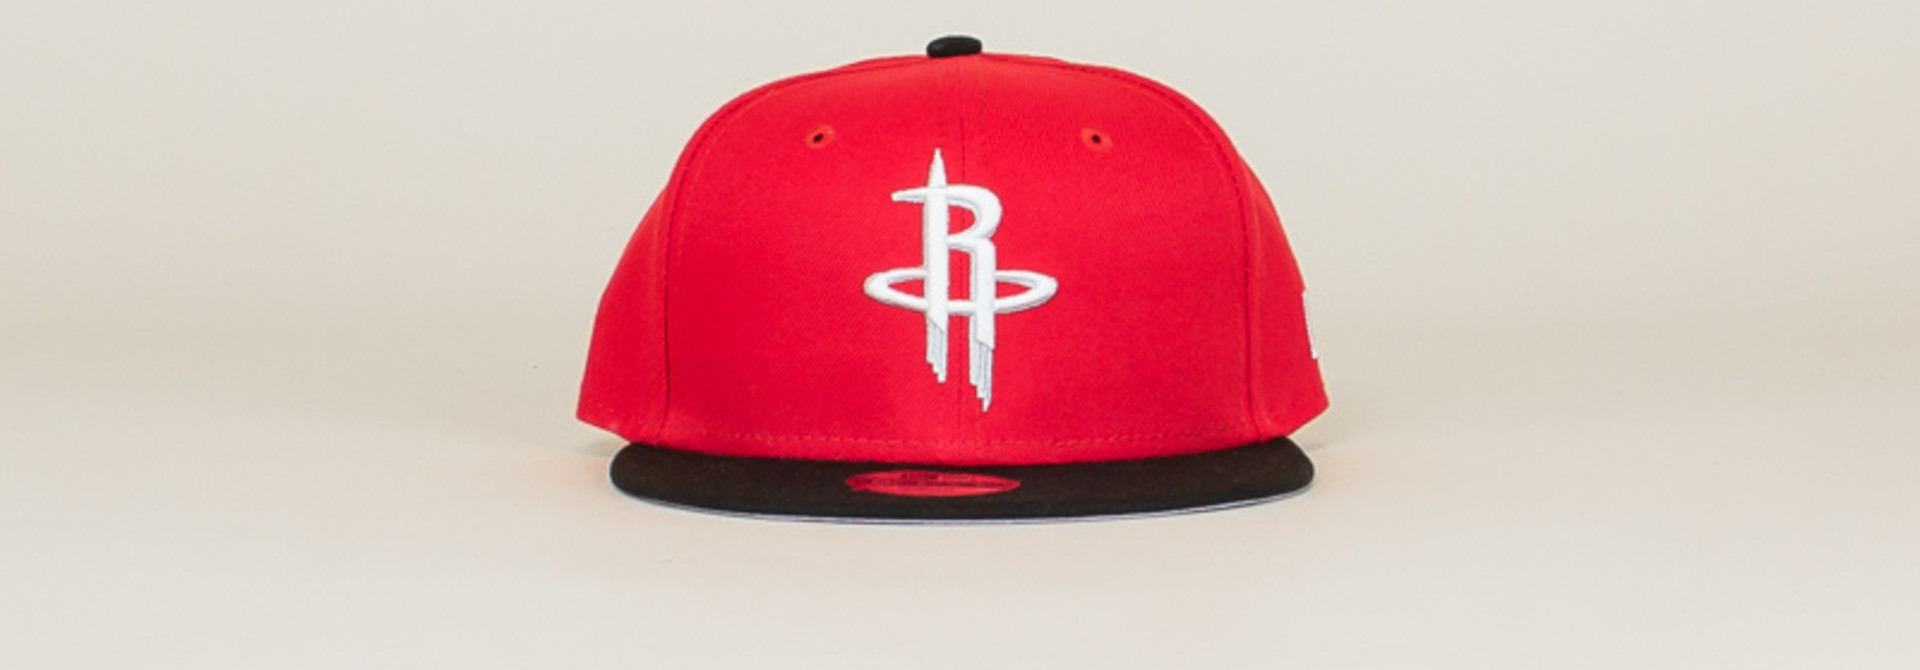 New Era Houston Rockets Snapback Hat - Red